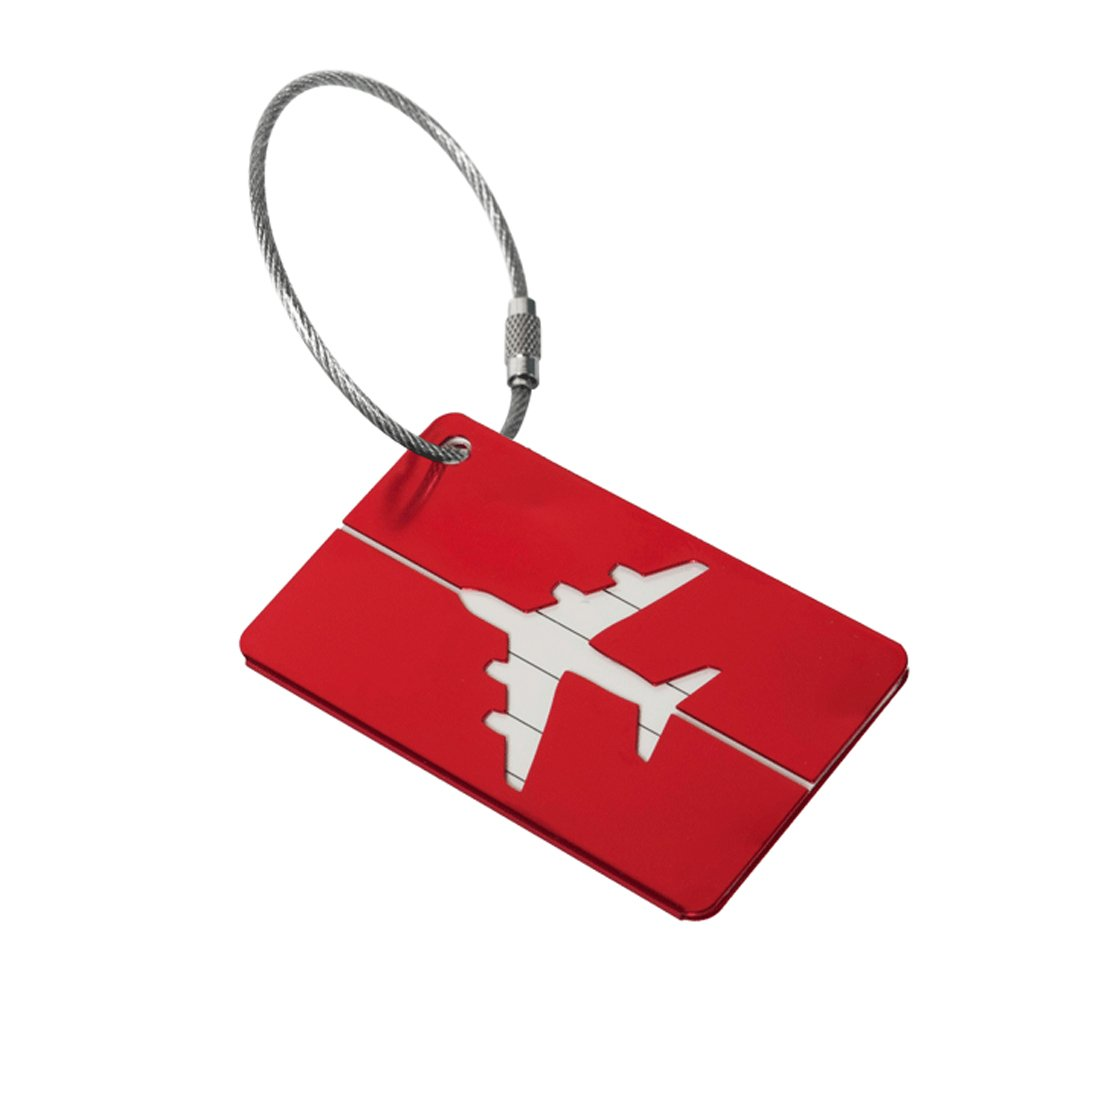 Metal Aluminum Suitcase Luggage Trailer Travel By Airbag Accessories Marker Tags Red